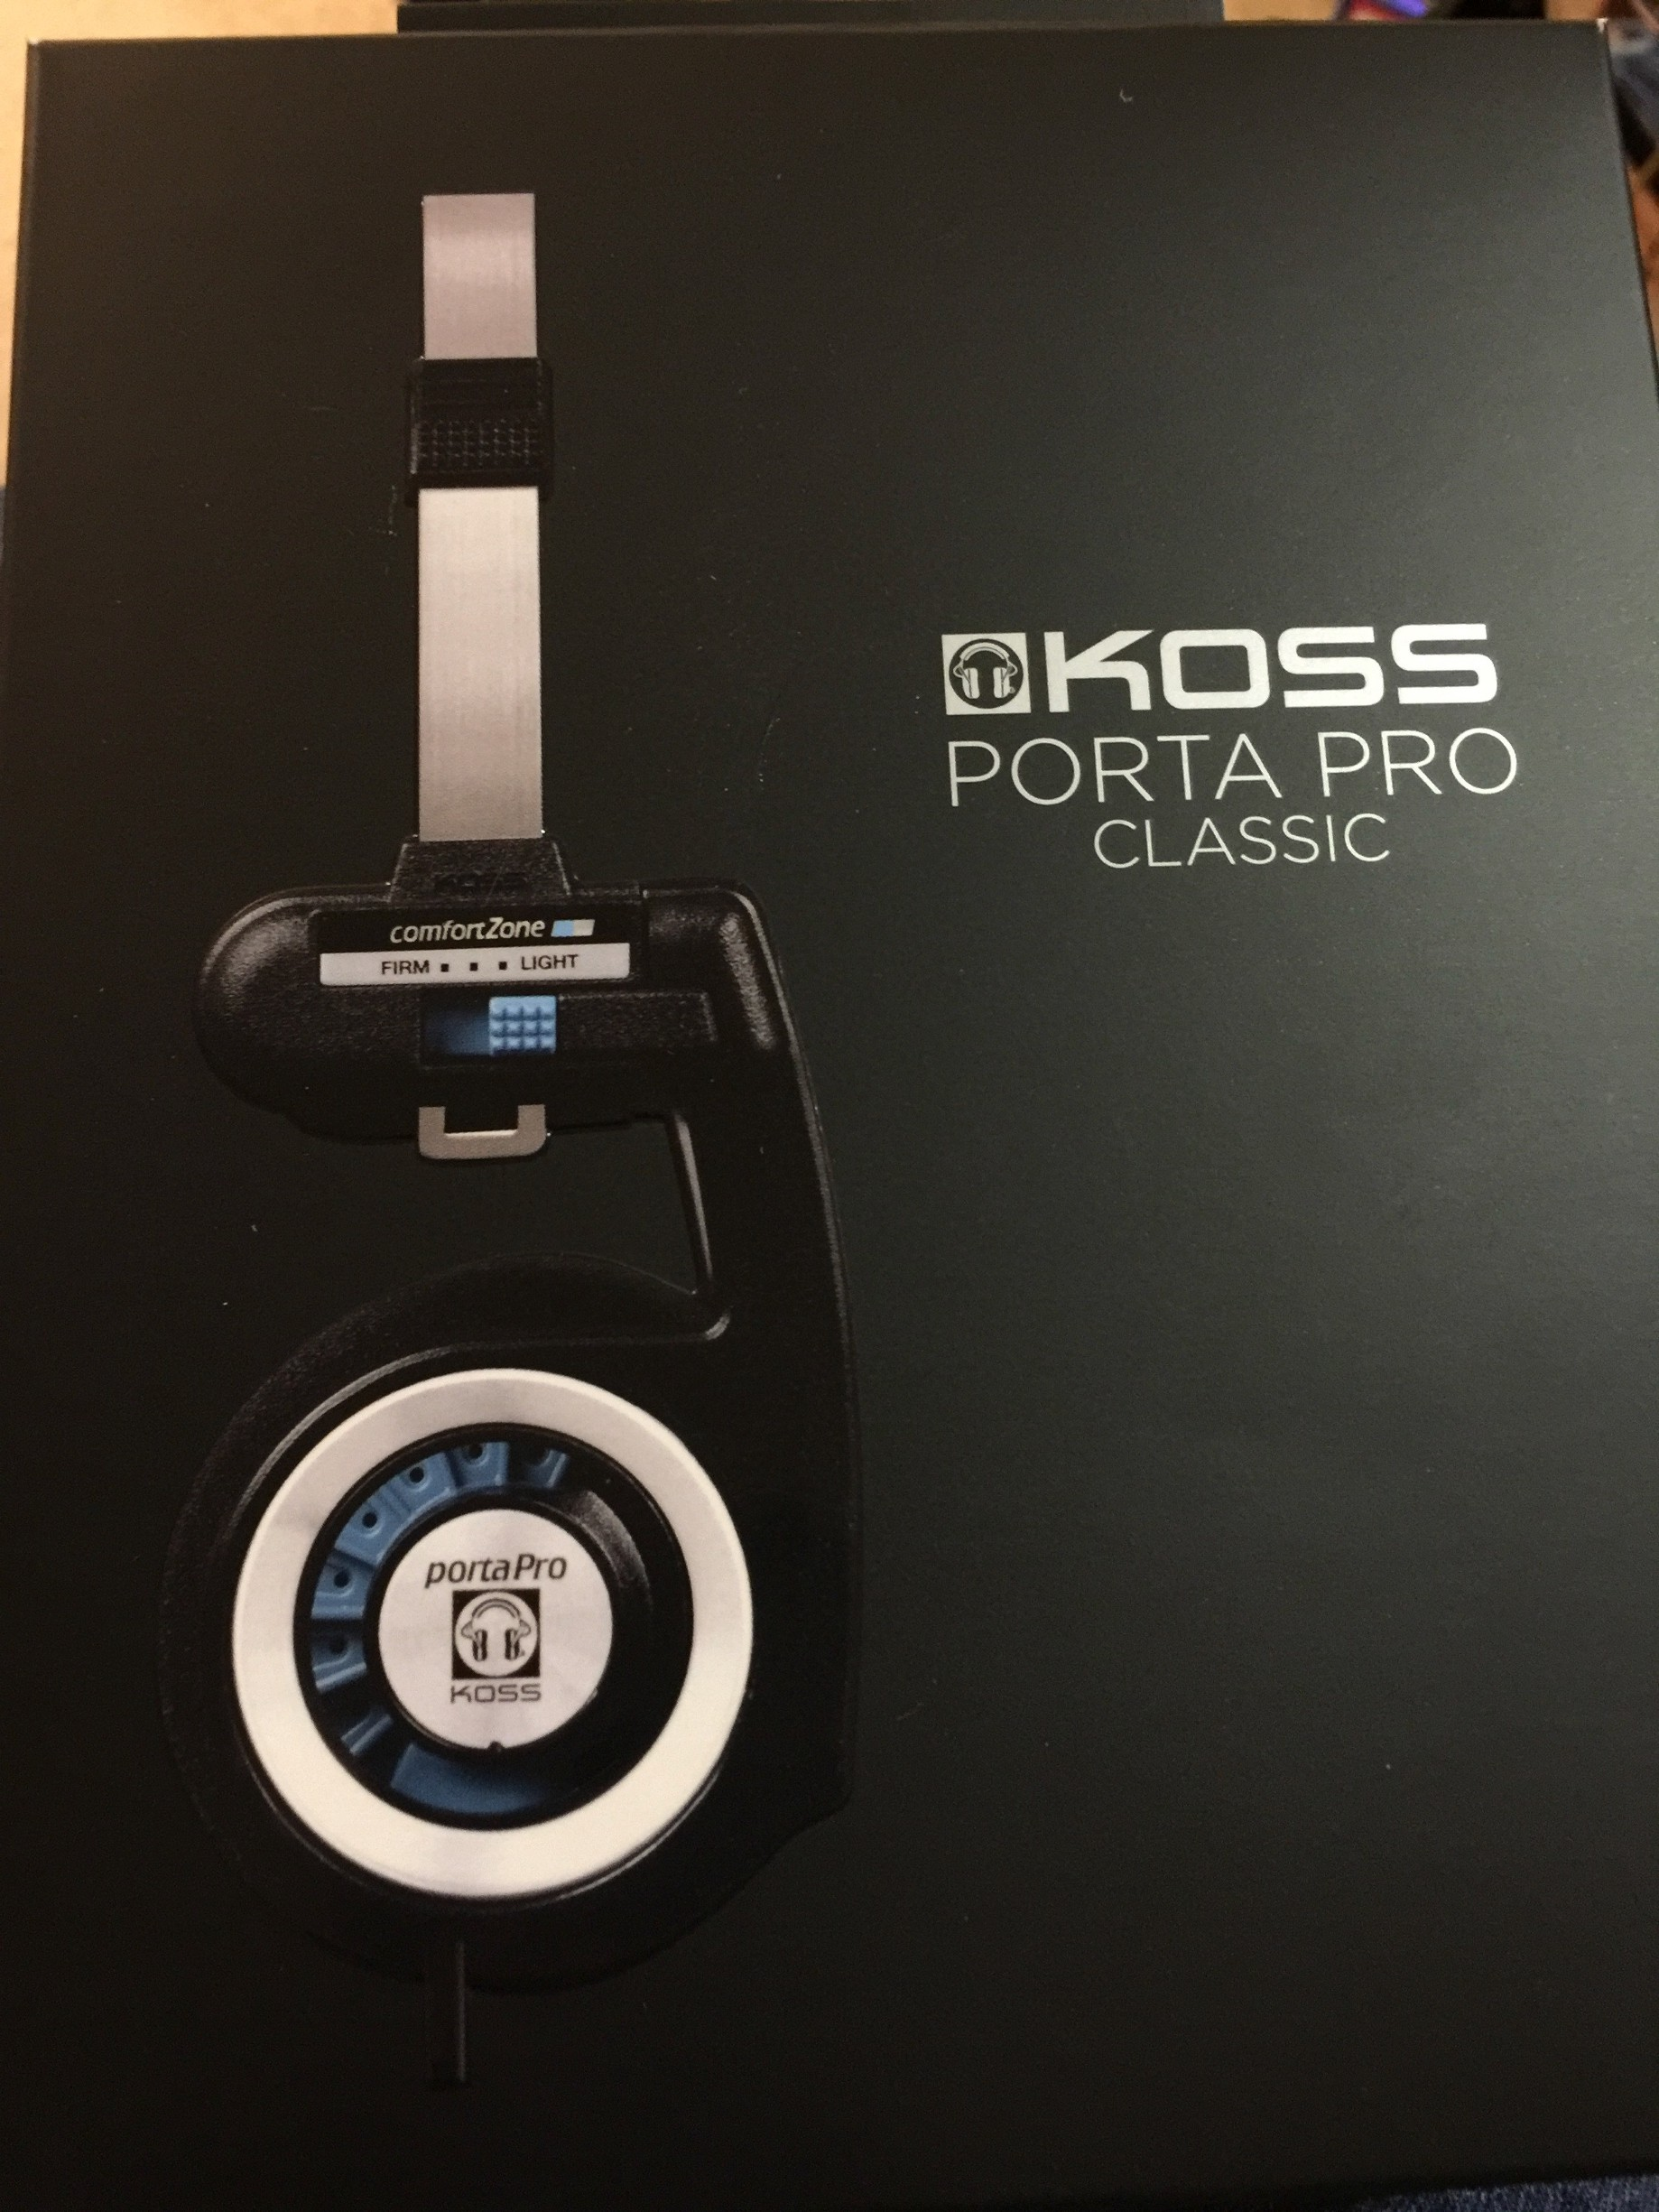 Koss Porta Pro Headphone Review: Wow! The Best Value on the Market